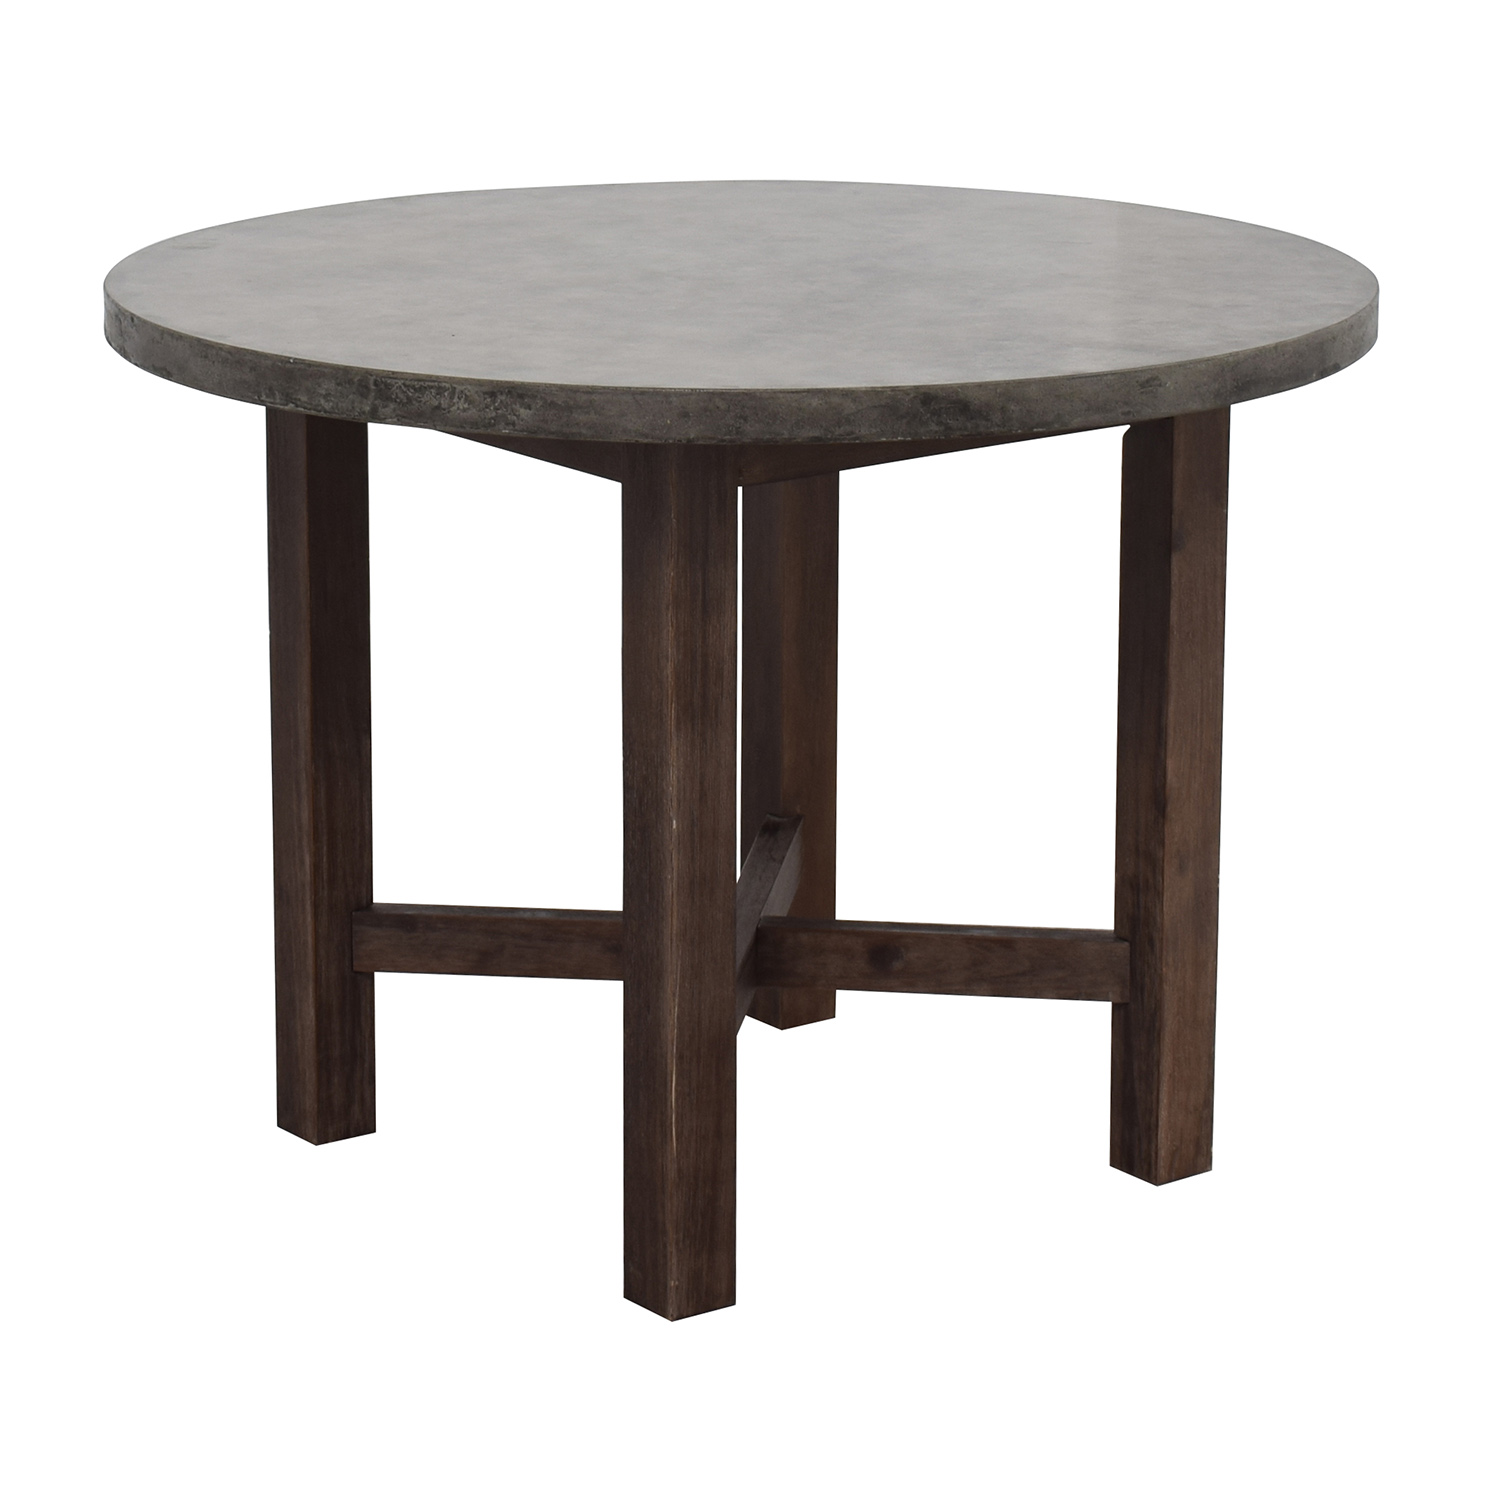 Granite Round Dining Table: Round Grey Stone Dining Table / Tables